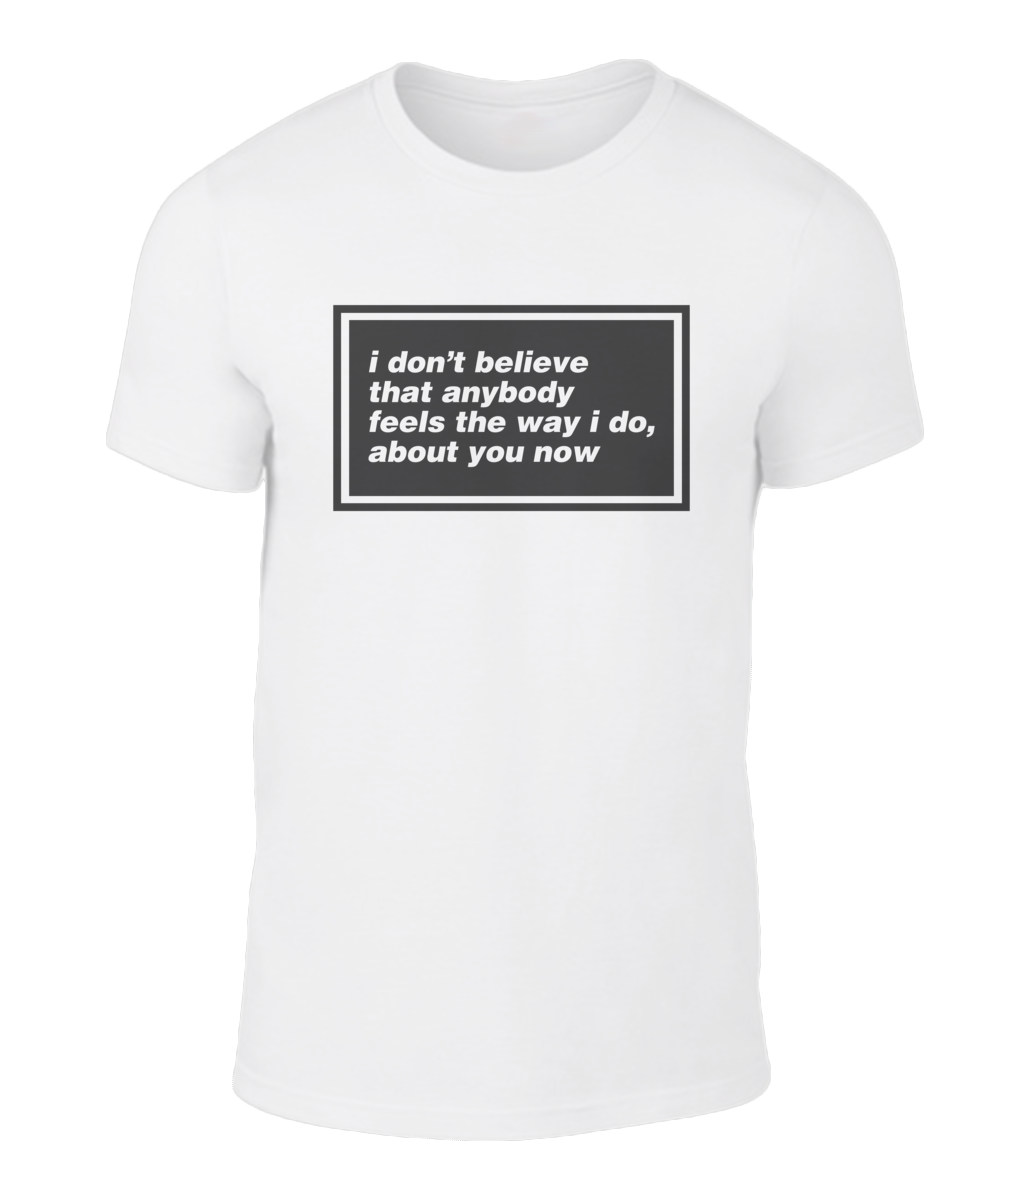 I Don't Believe That Anybody - Oasis - Wonderwall - Lyric T-Shirt